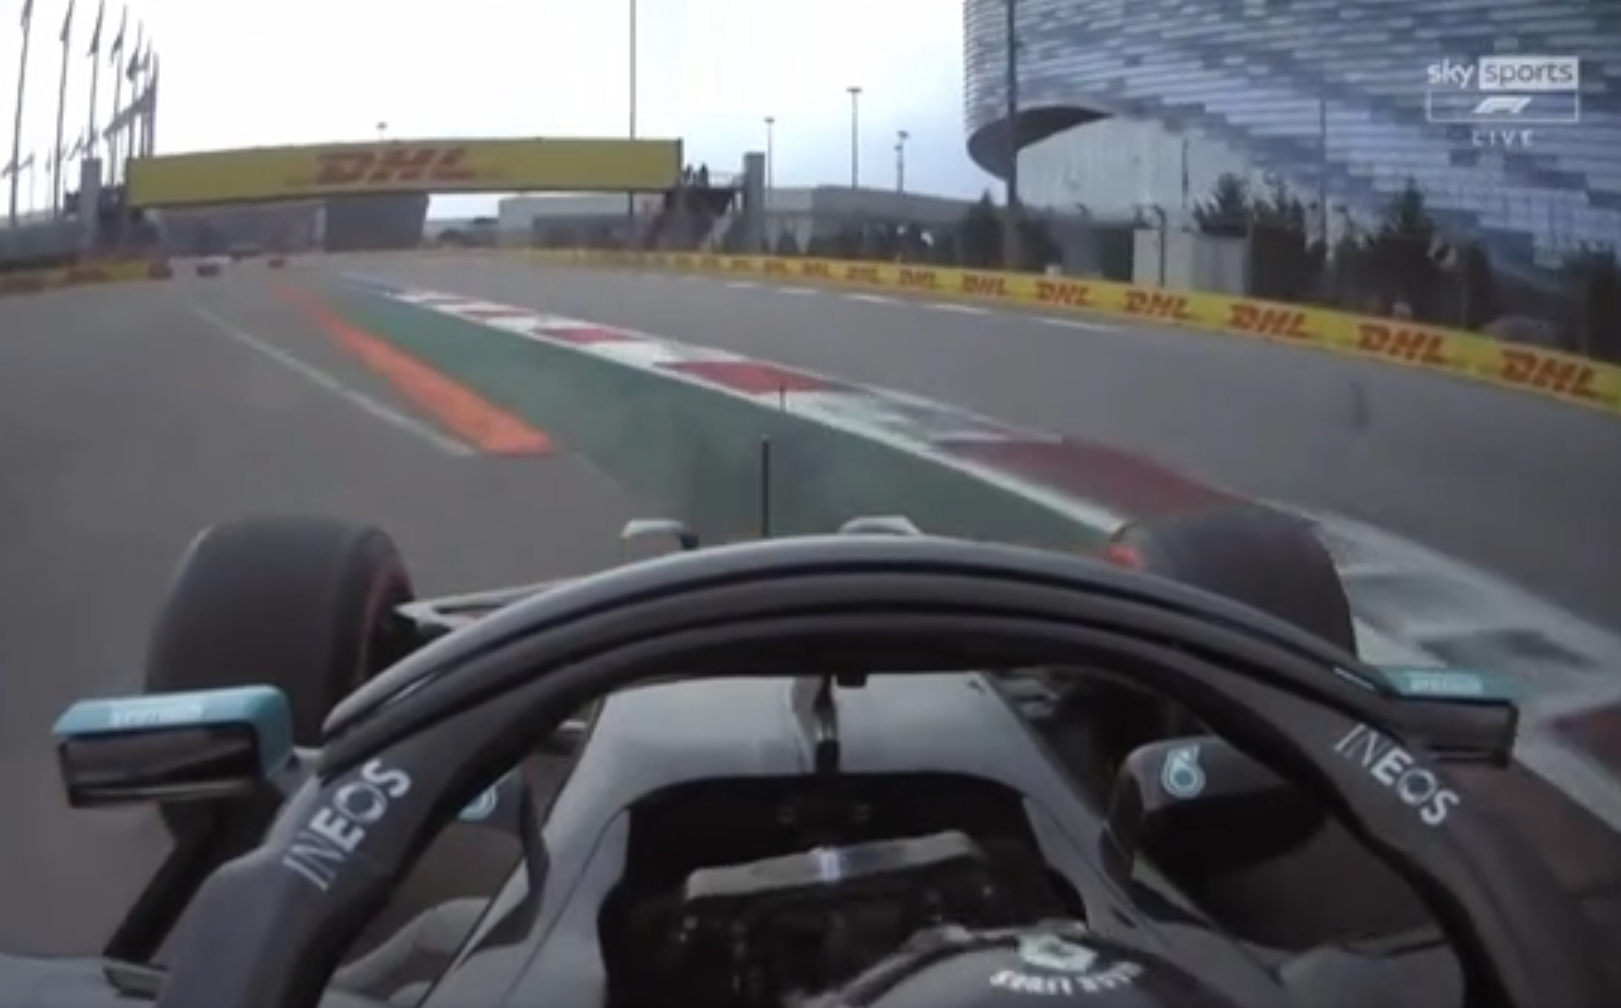 VIDEO: Lewis Hamilton Might Get Penalized For This Moment